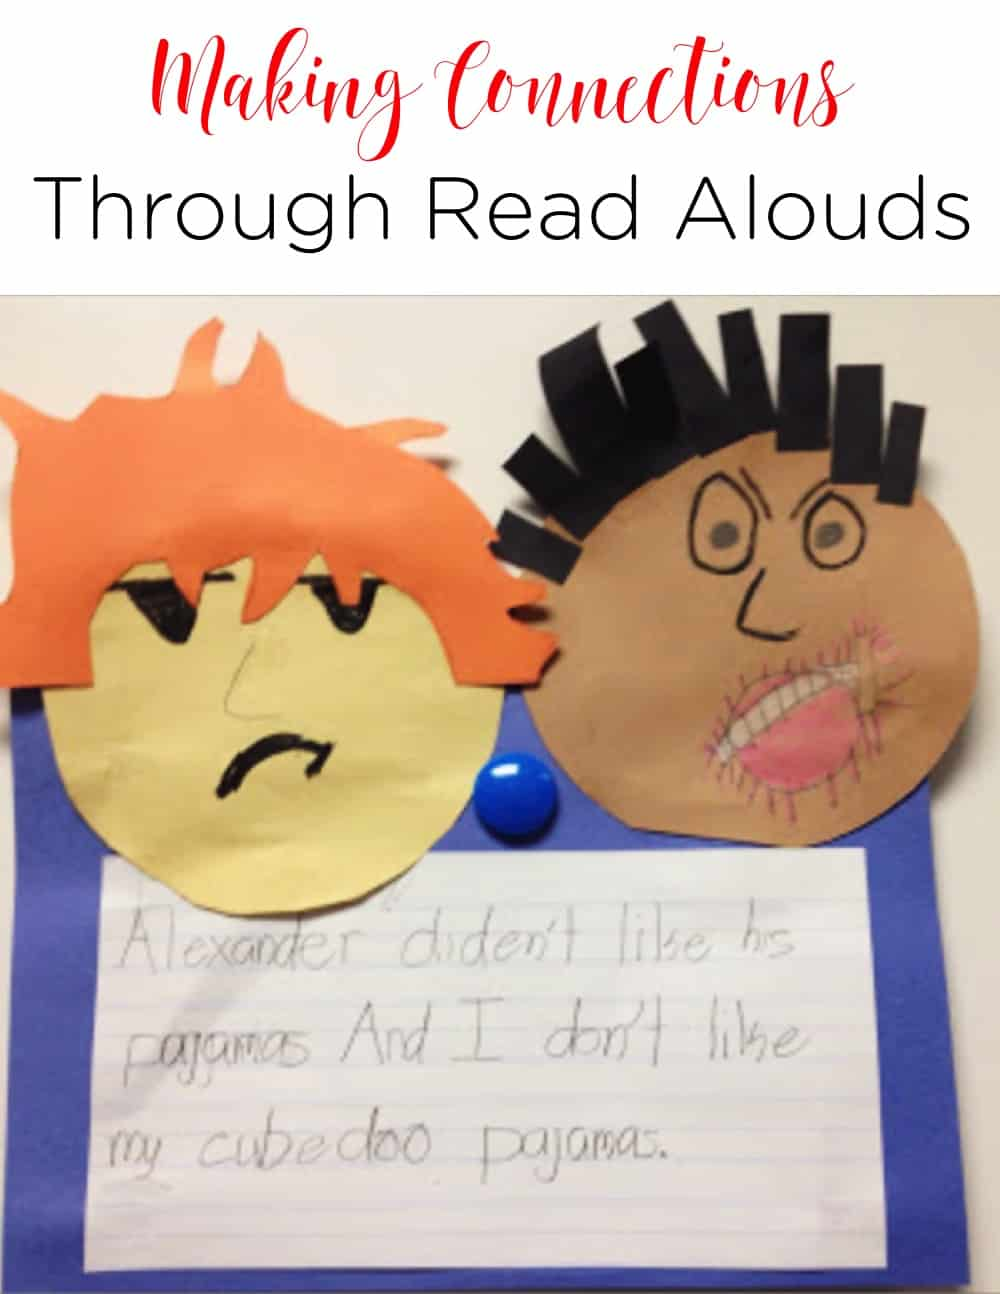 Making connections is one of the first skills I teach. Using interactive read alouds to do this is the perfect opportunity to engage learners and get them thinking! #Literacy #FirstGrade